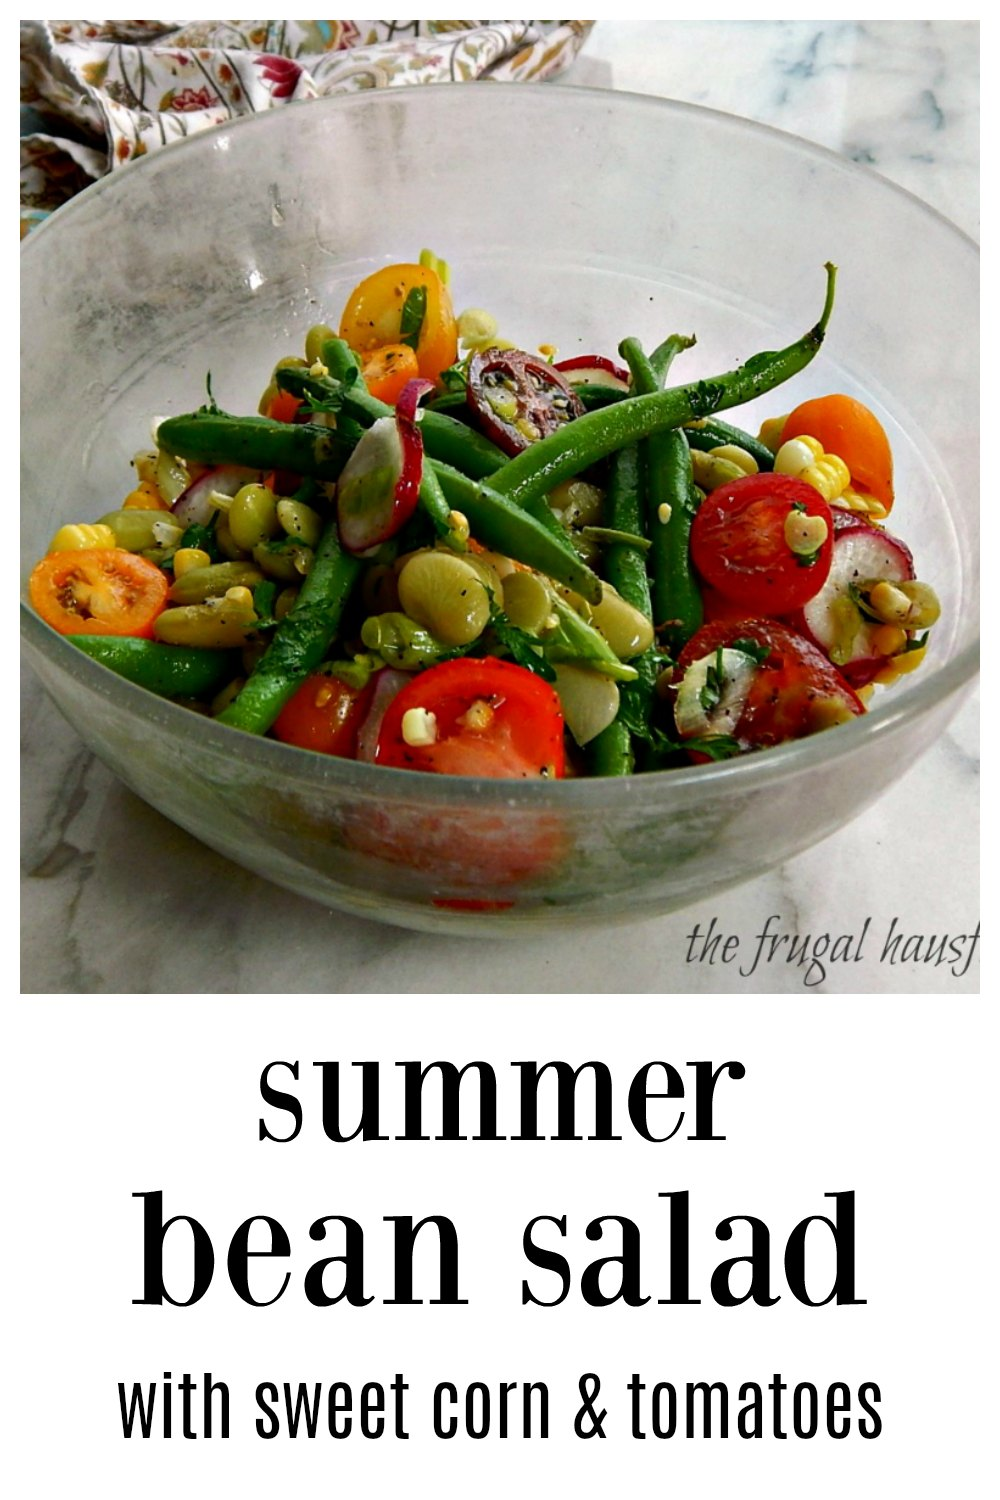 Summer Bean Salad might look simple (and it is) but it has an outstanding blend of flavors. It really is stand out incredible. From the Chef at the famous Kindreds Restaurant. Perfect for a get-together! #SummerSide #SummerBeanSalad #Succotash